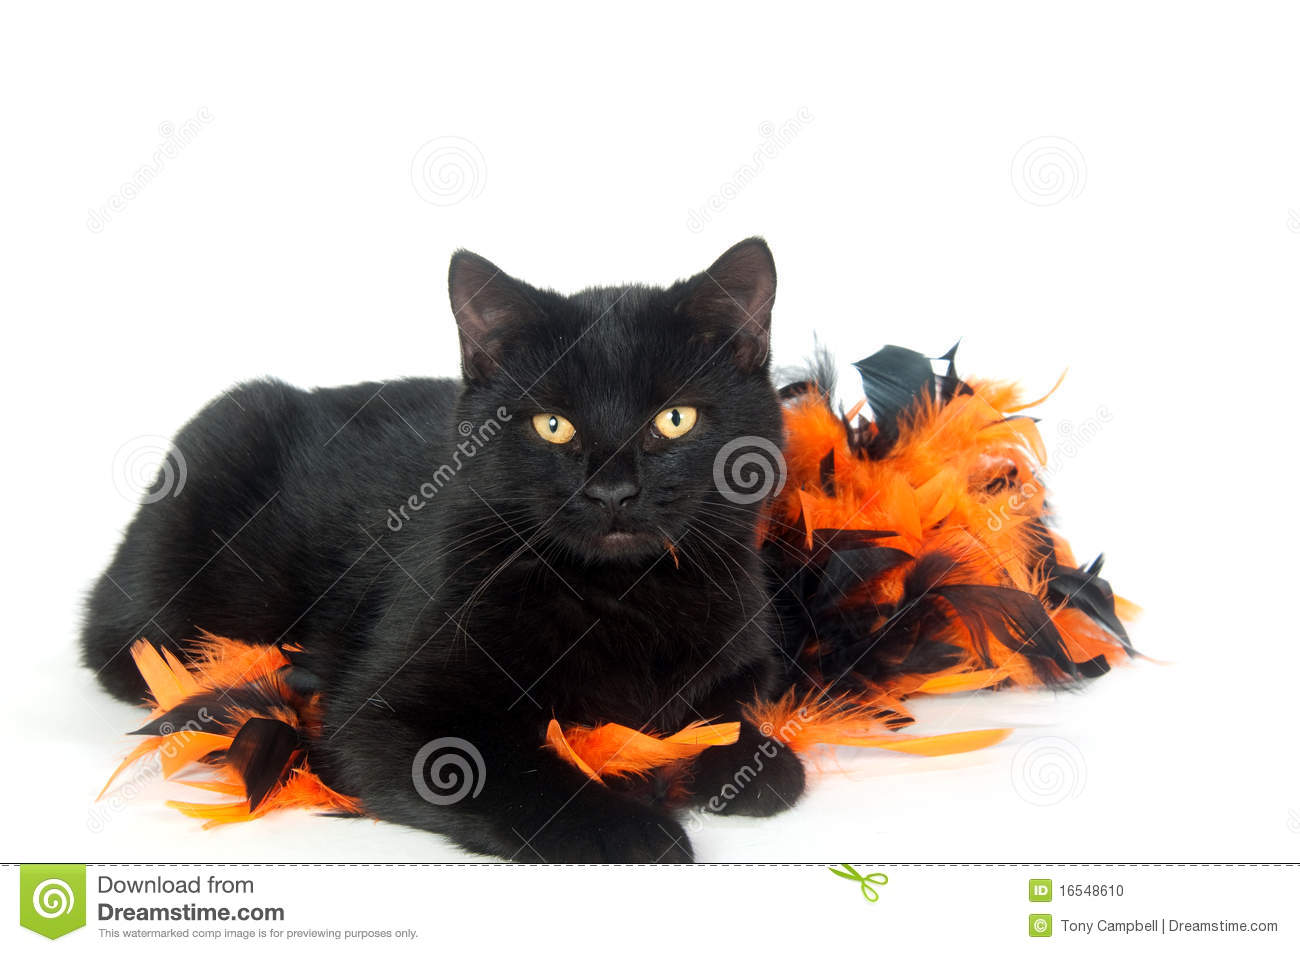 background black cat decorations halloween - Halloween Cat Decorations